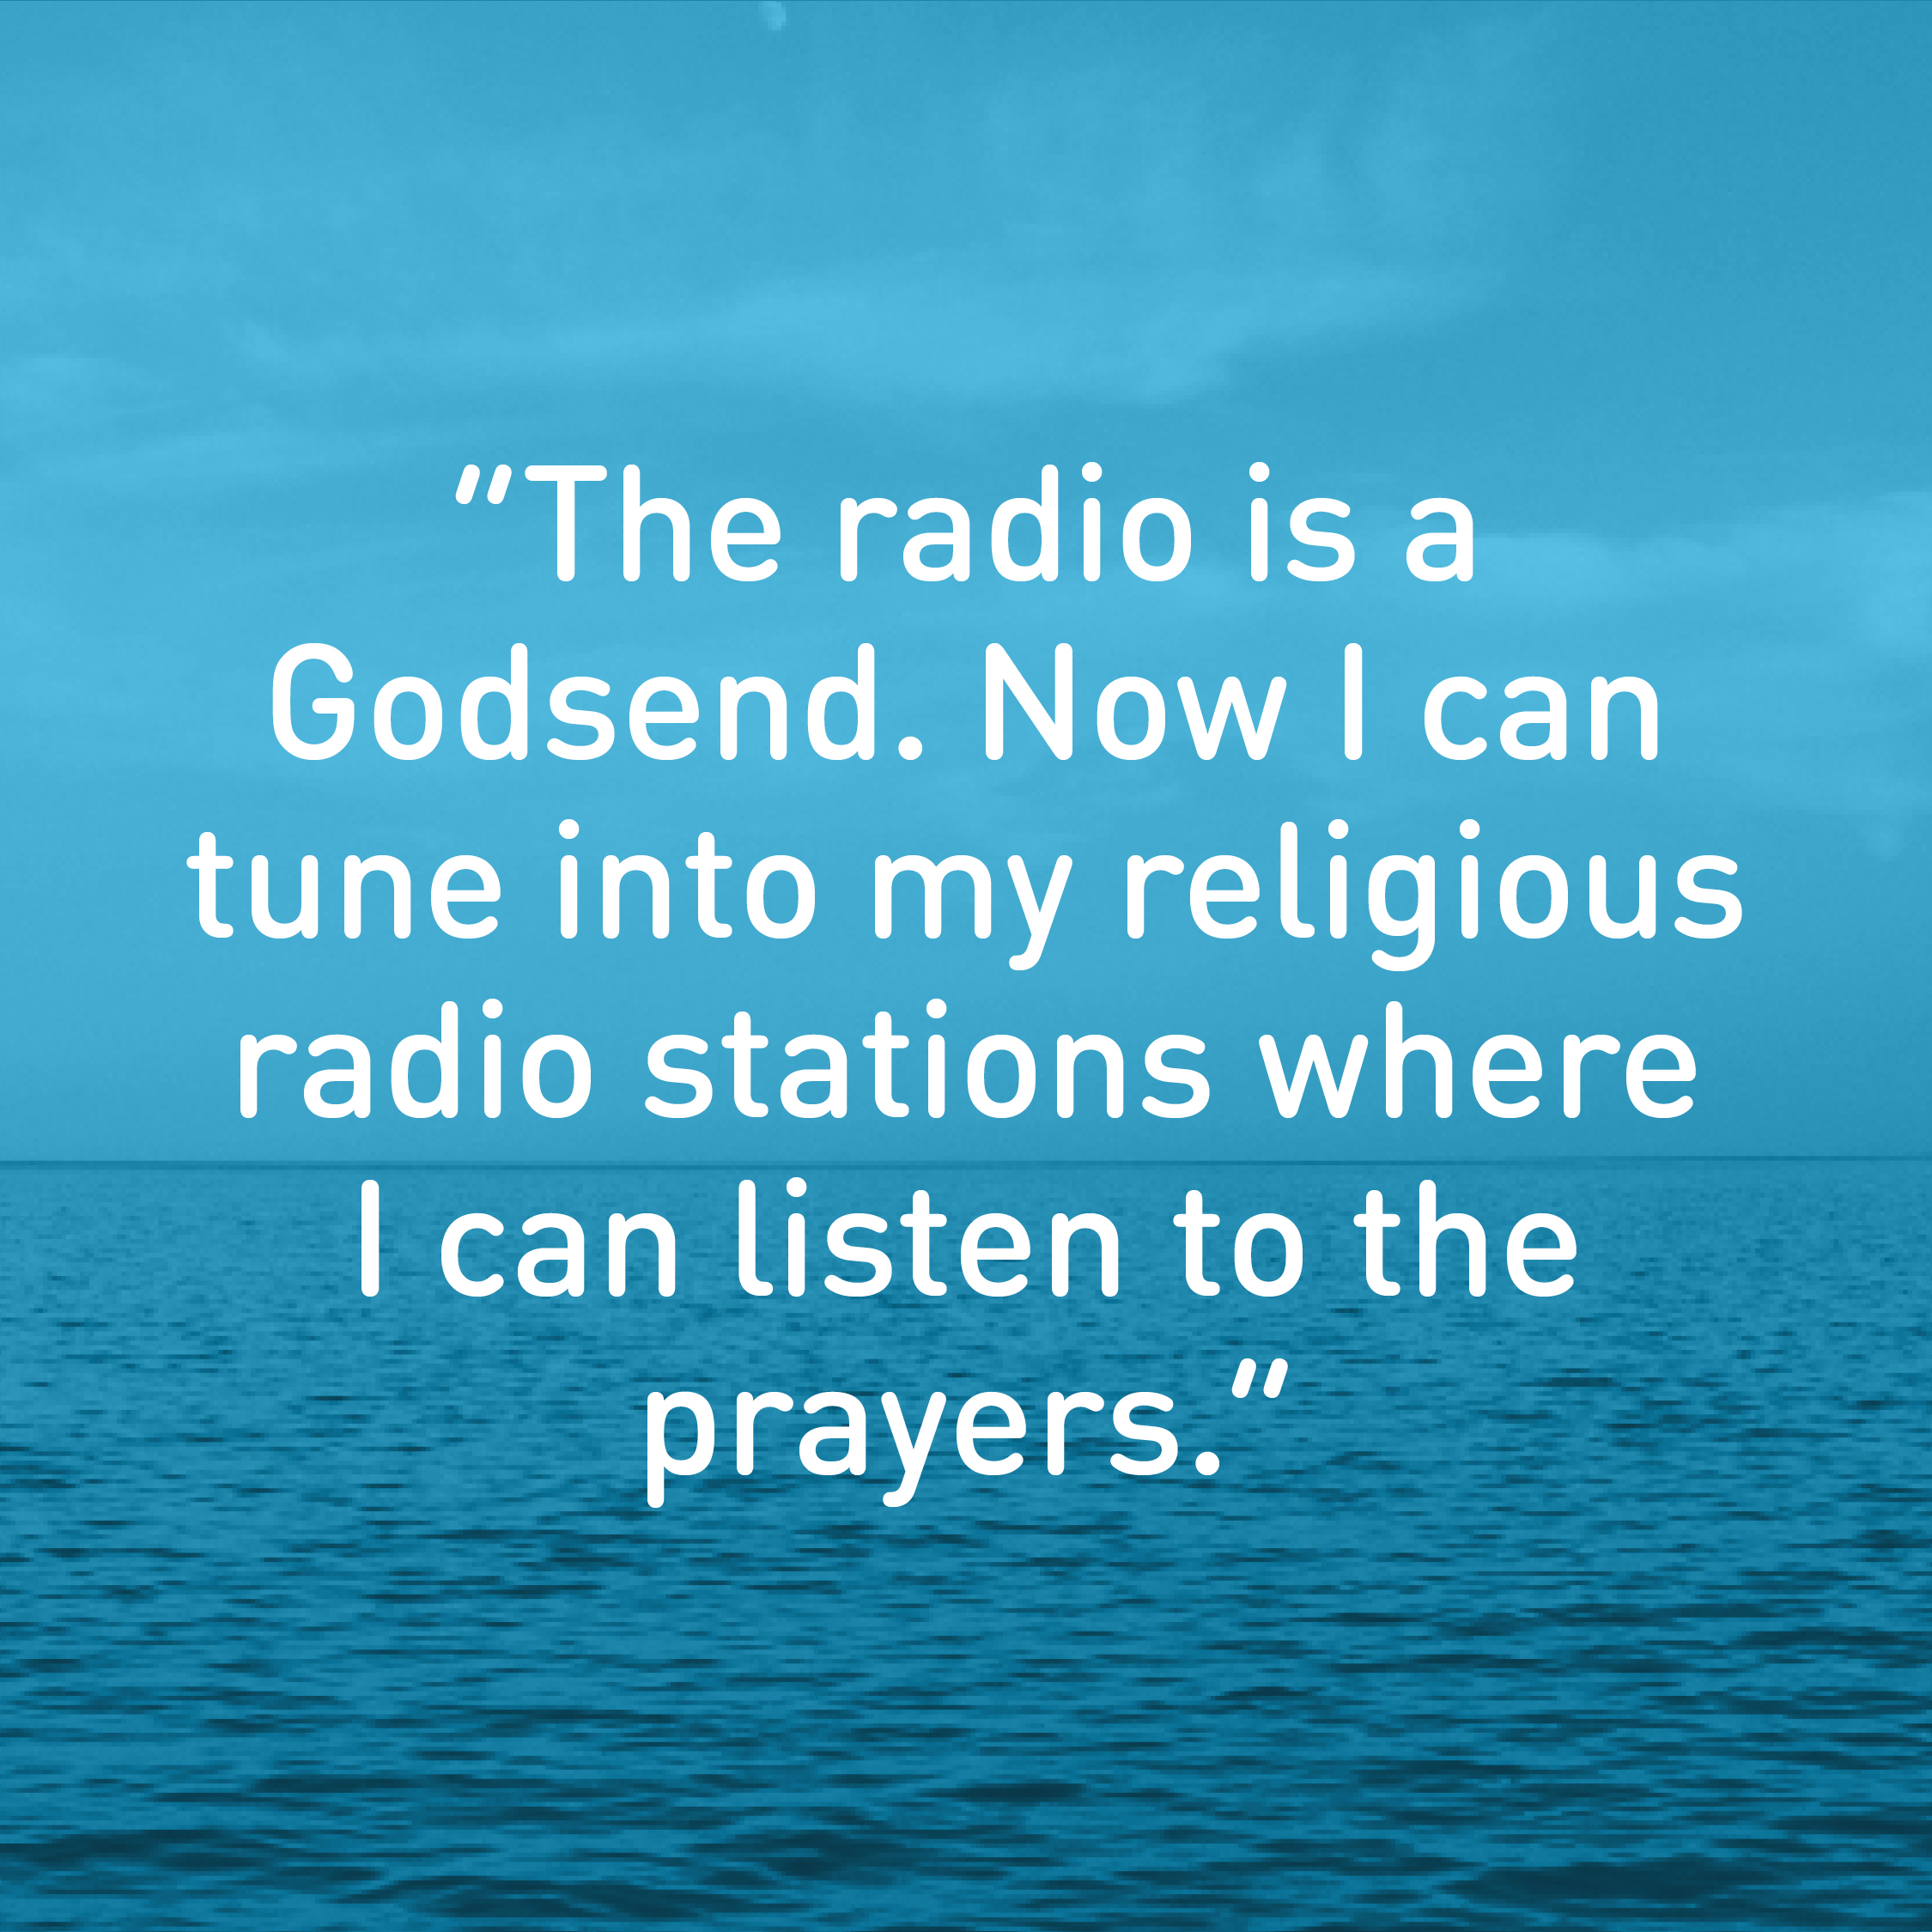 The radio is a Godsend. Now I can tune into my religious radio stations where I can listen to the prayers.